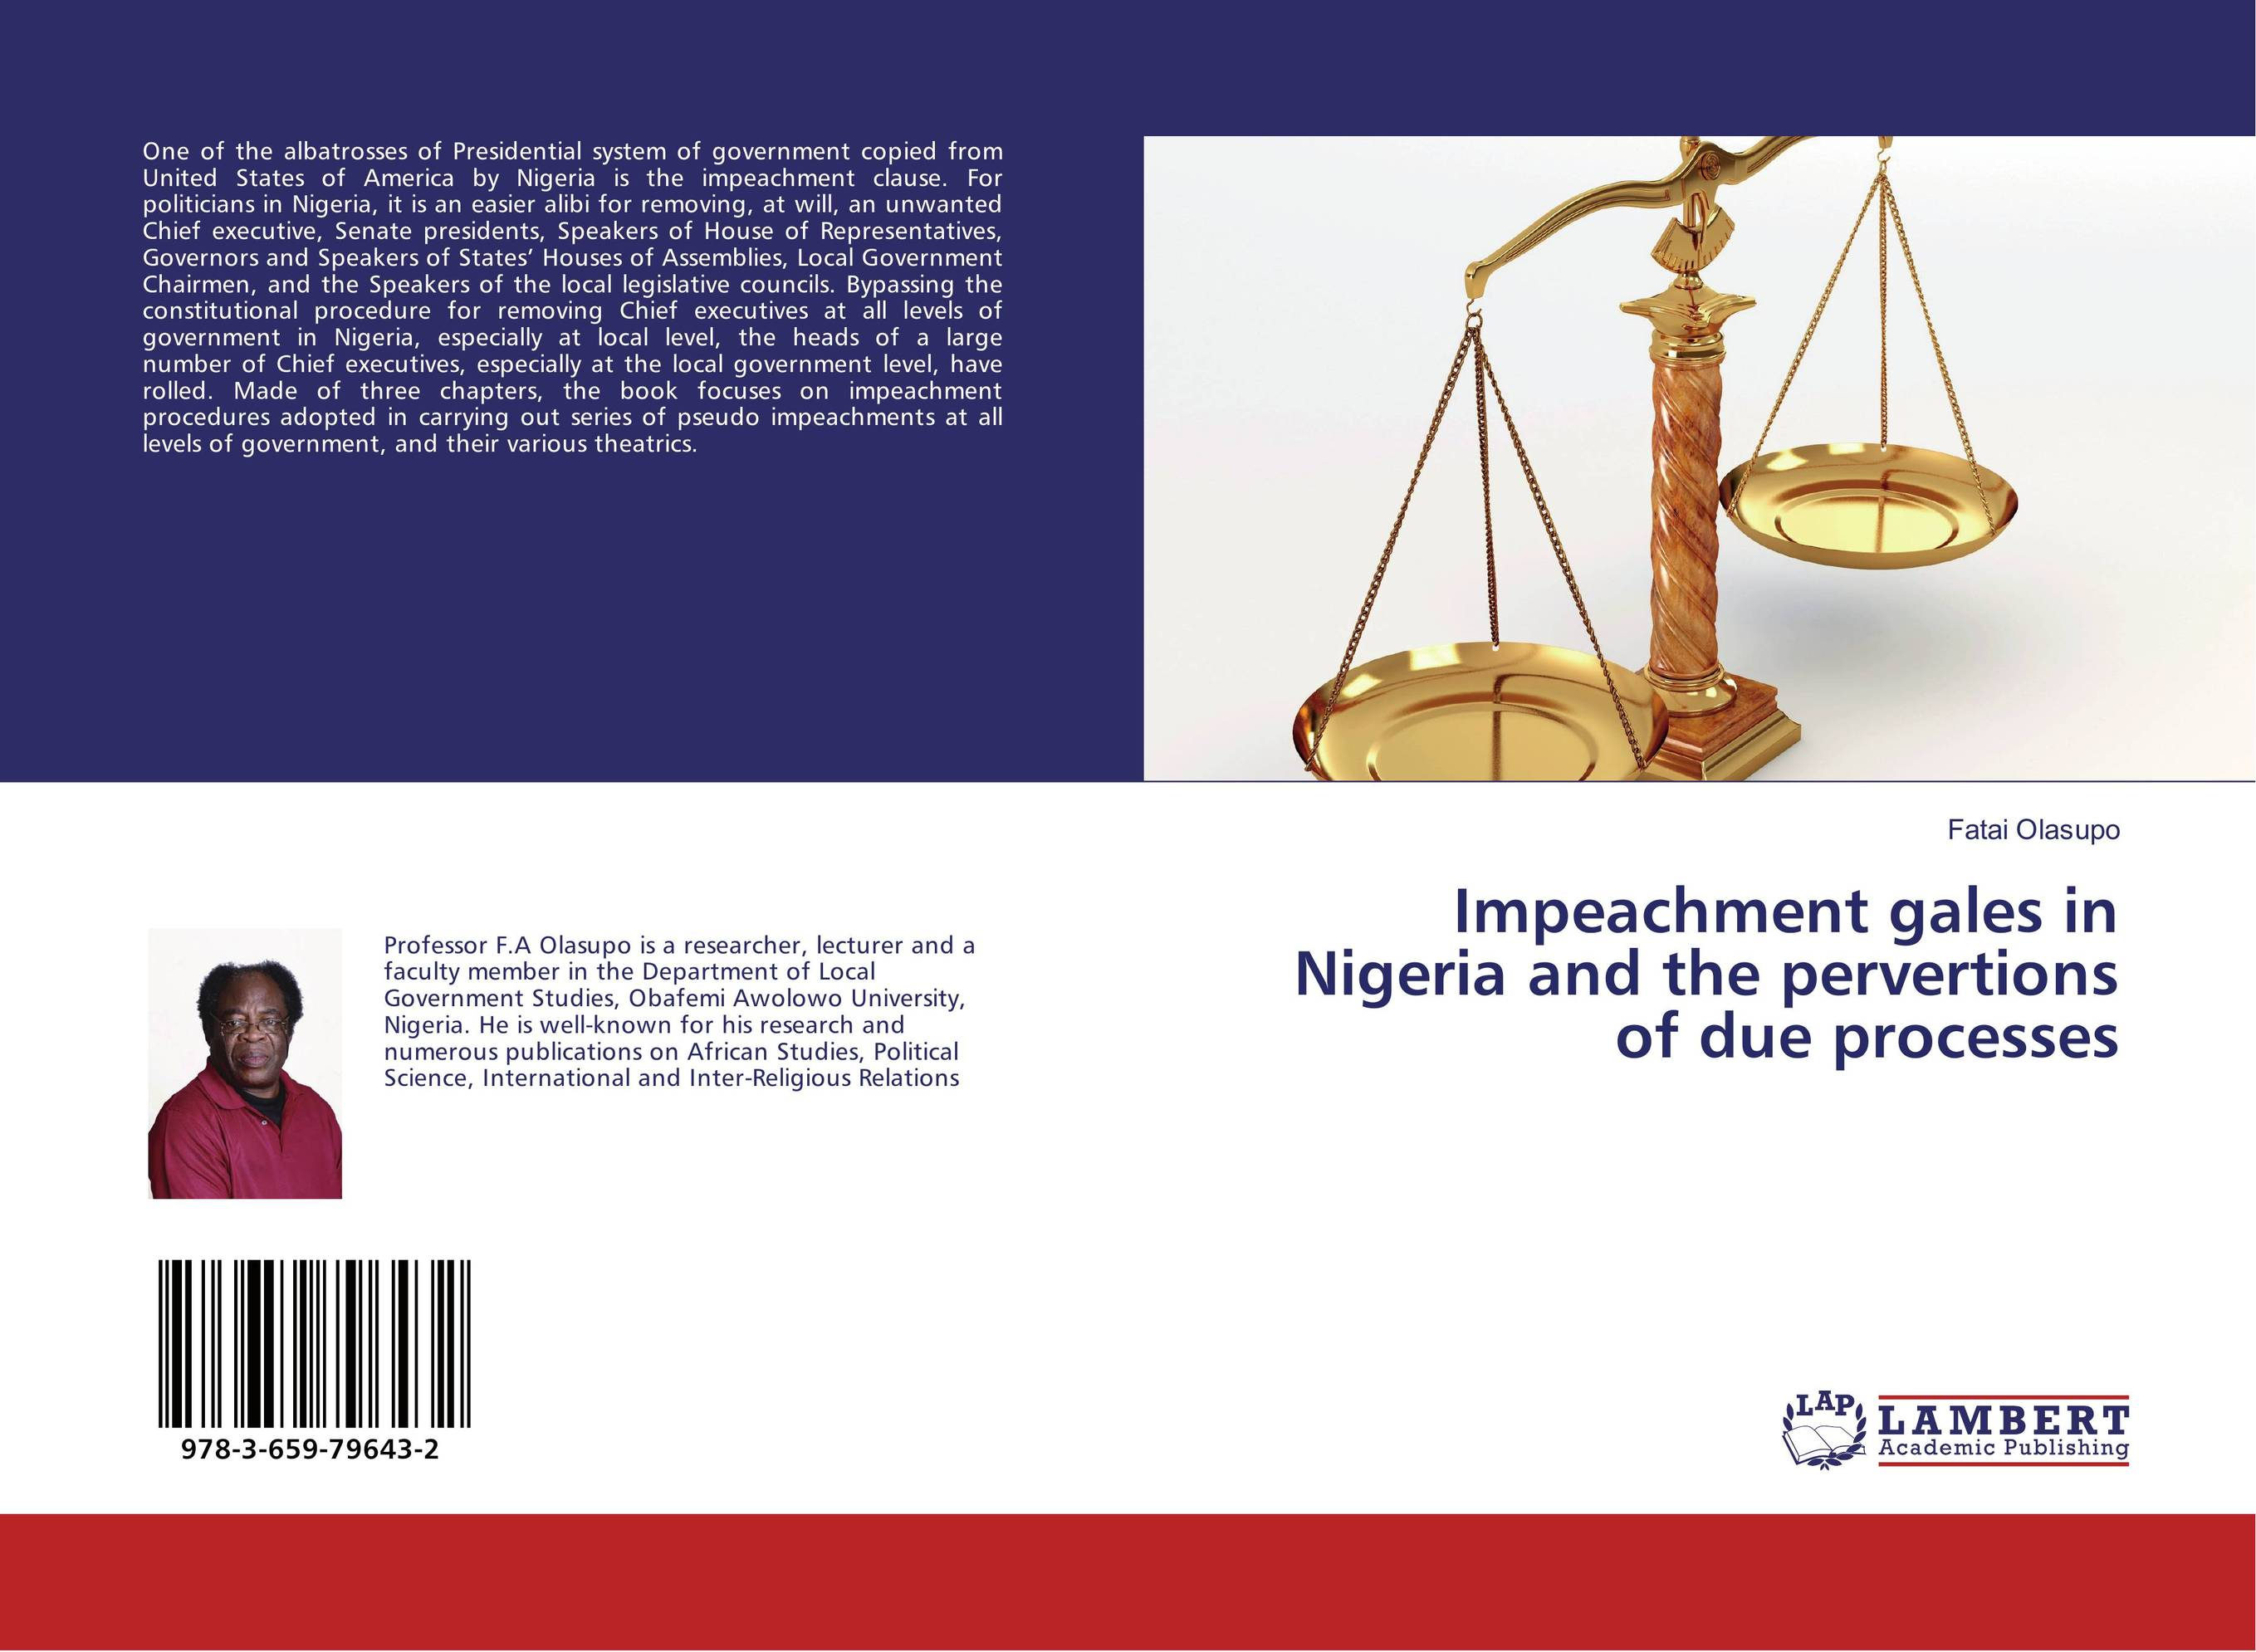 Impeachment gales in Nigeria and the pervertions of due processes g80n60ufd sgh80n60ufd to 3p